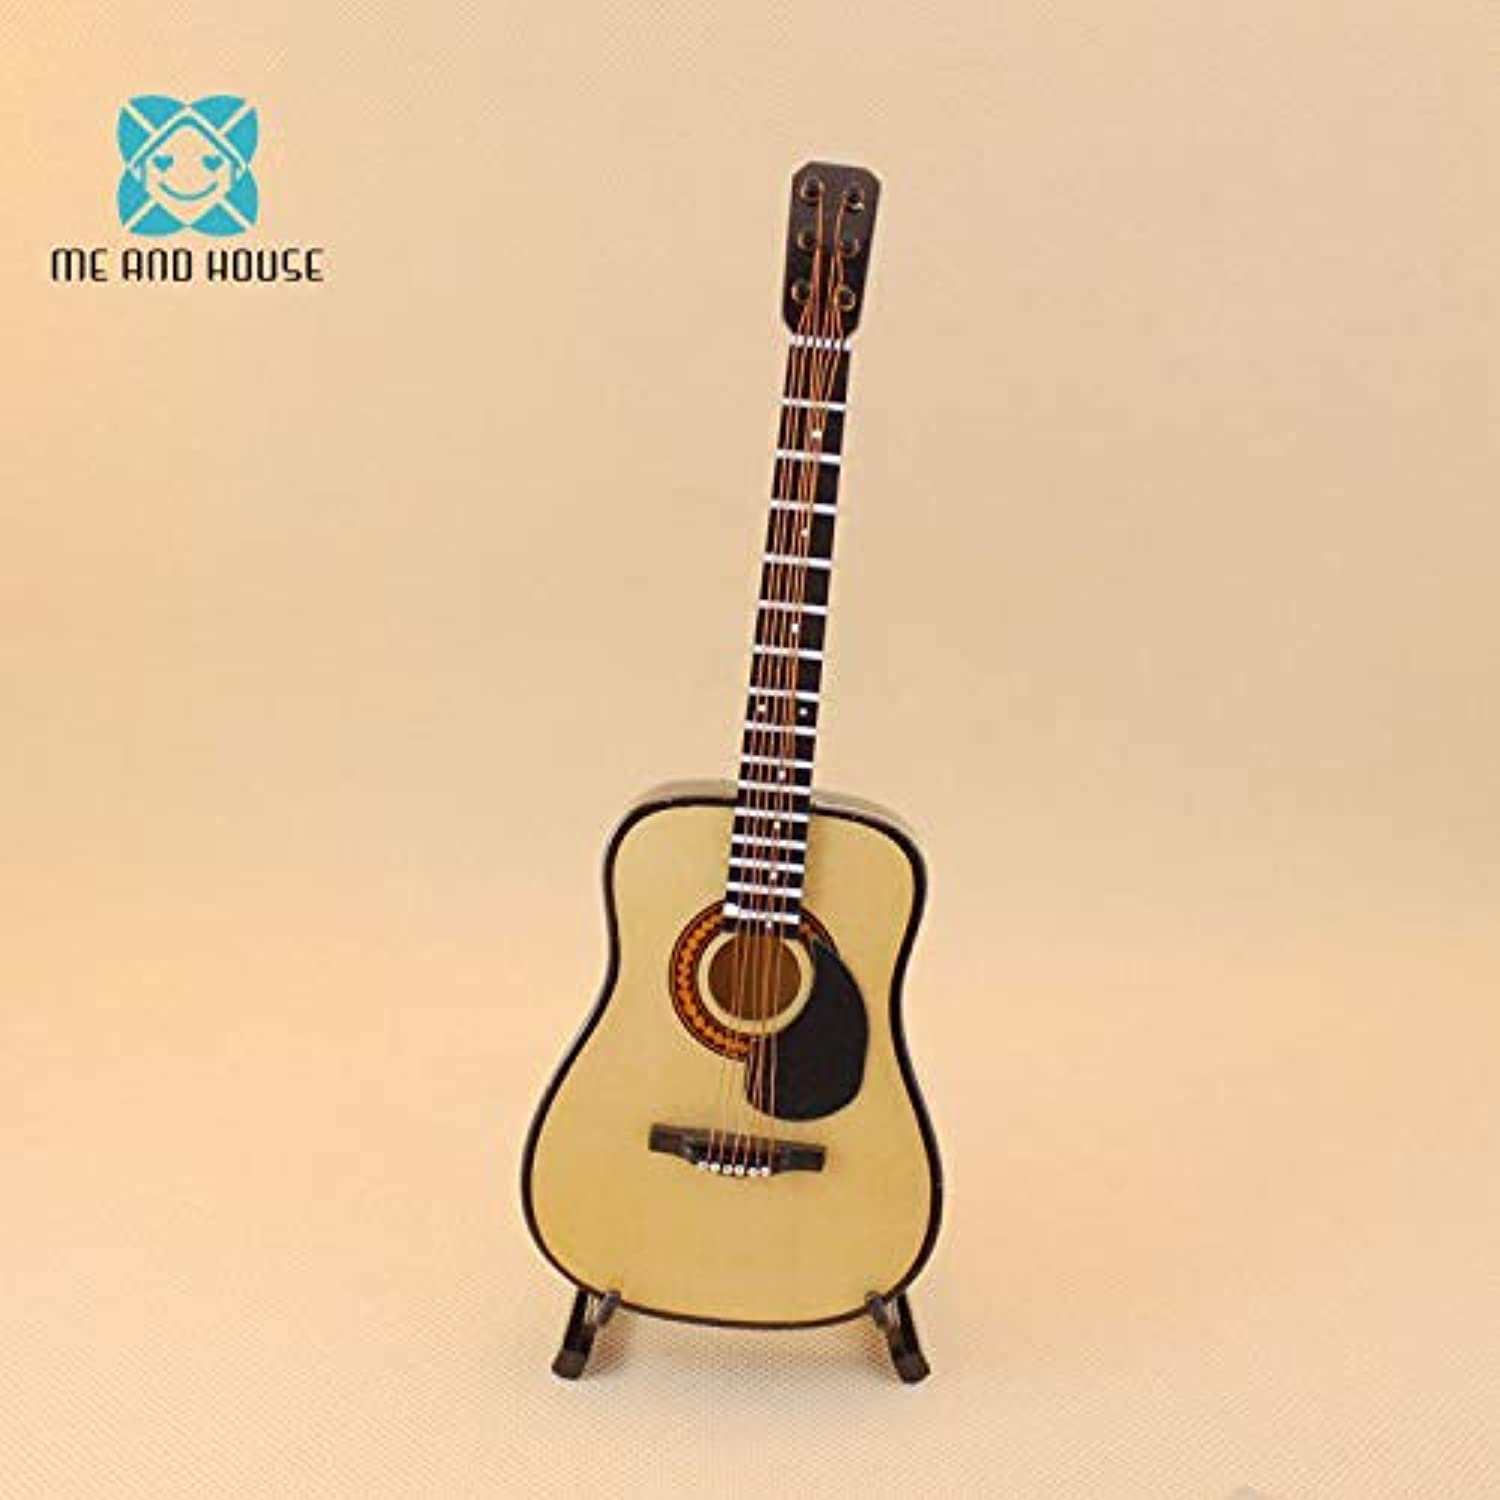 Kiartten 1 6 Scale Furniture - Scale Doll Acoustic Guitar Miniature Doll House Wooden Hmade Nittaku Acoustic Musical Instrunts Decoration 1 Pcs